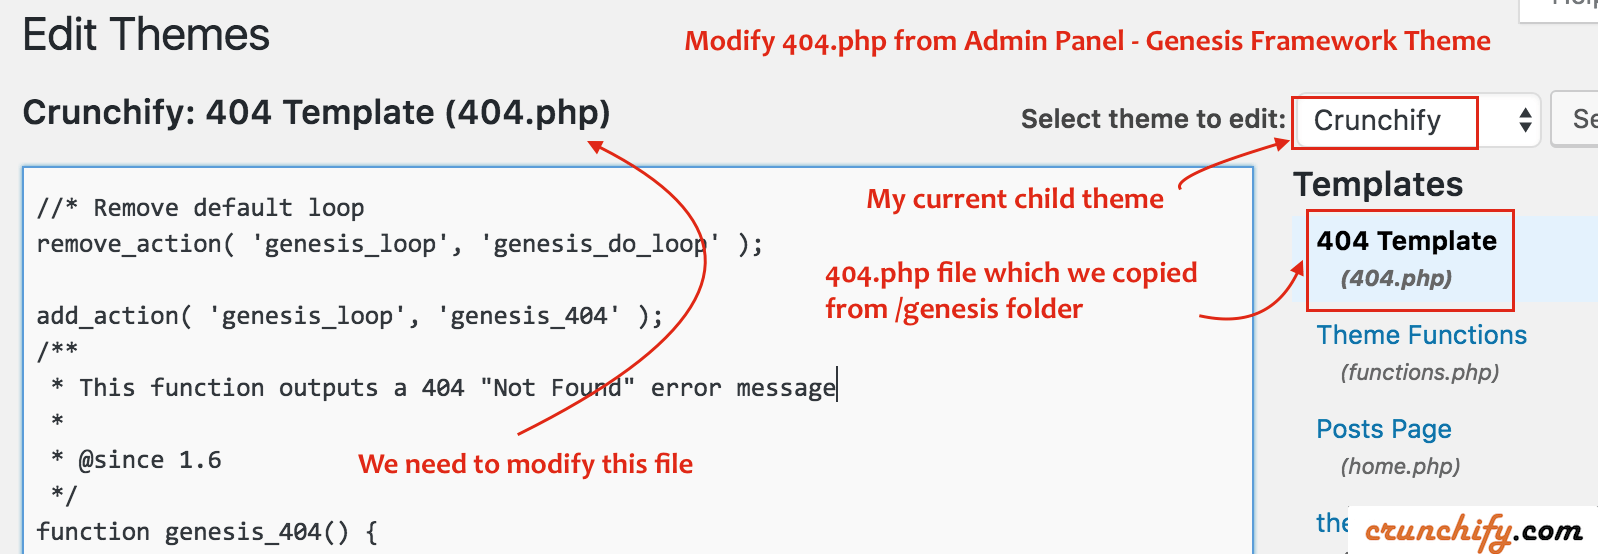 Modify 404.php from Admin Panel - Crunchify Tips